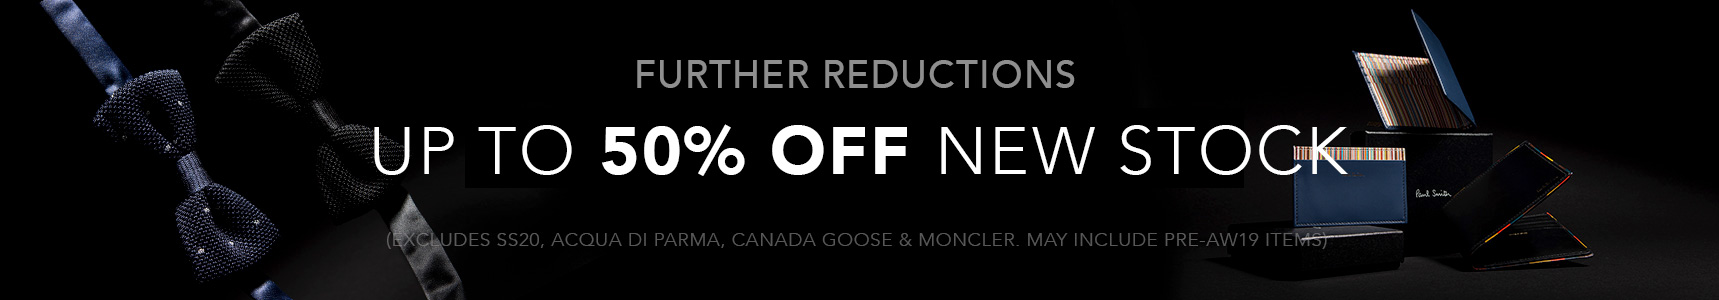 Up To 50% Off New Stock